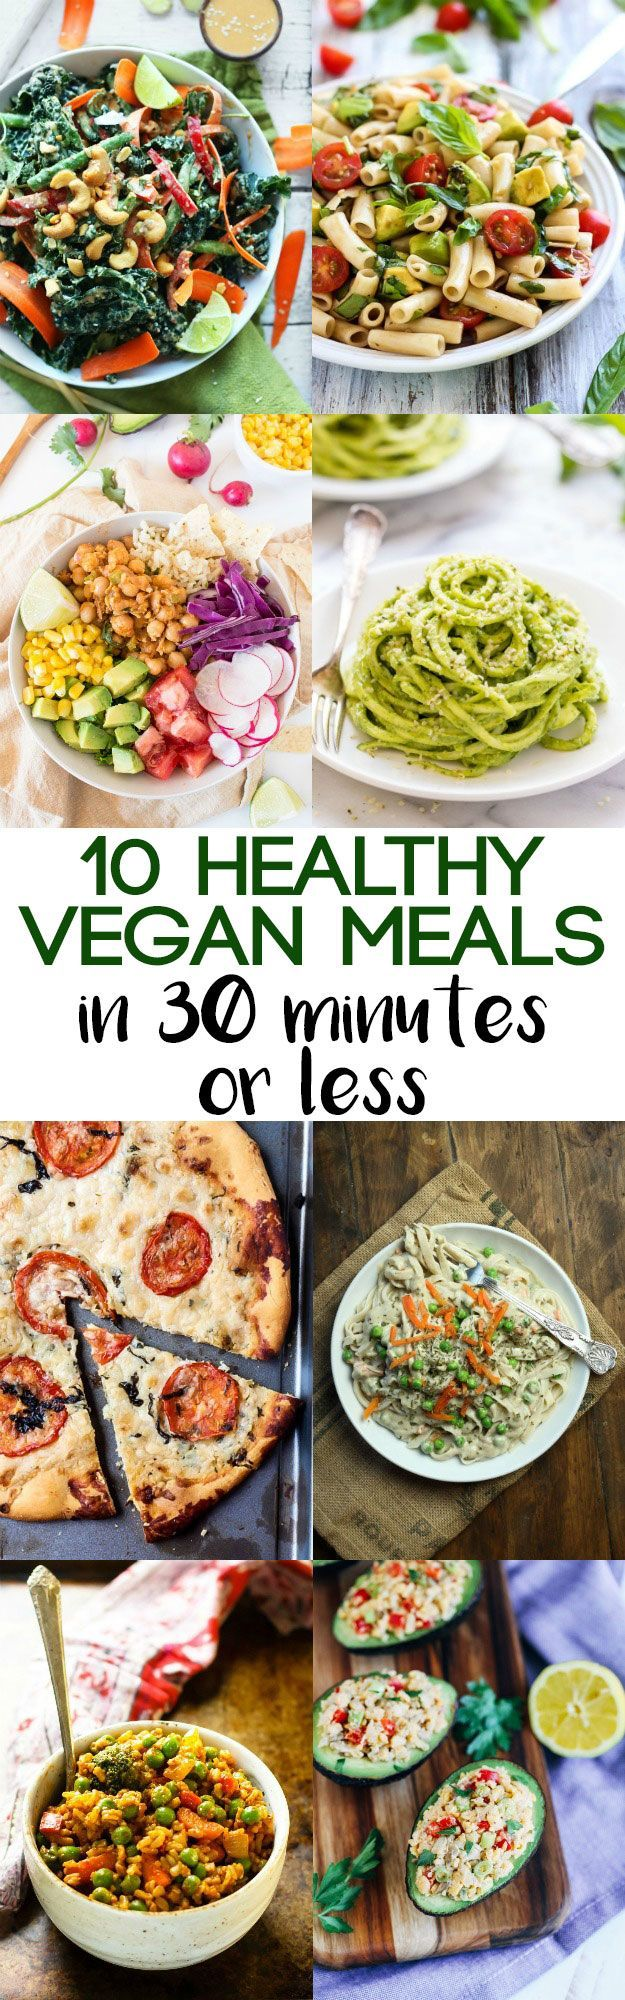 You can still enjoy a healthy dinner! These 10 healthy vegan meals in 30 minutes or less will save you on busy weeknights.